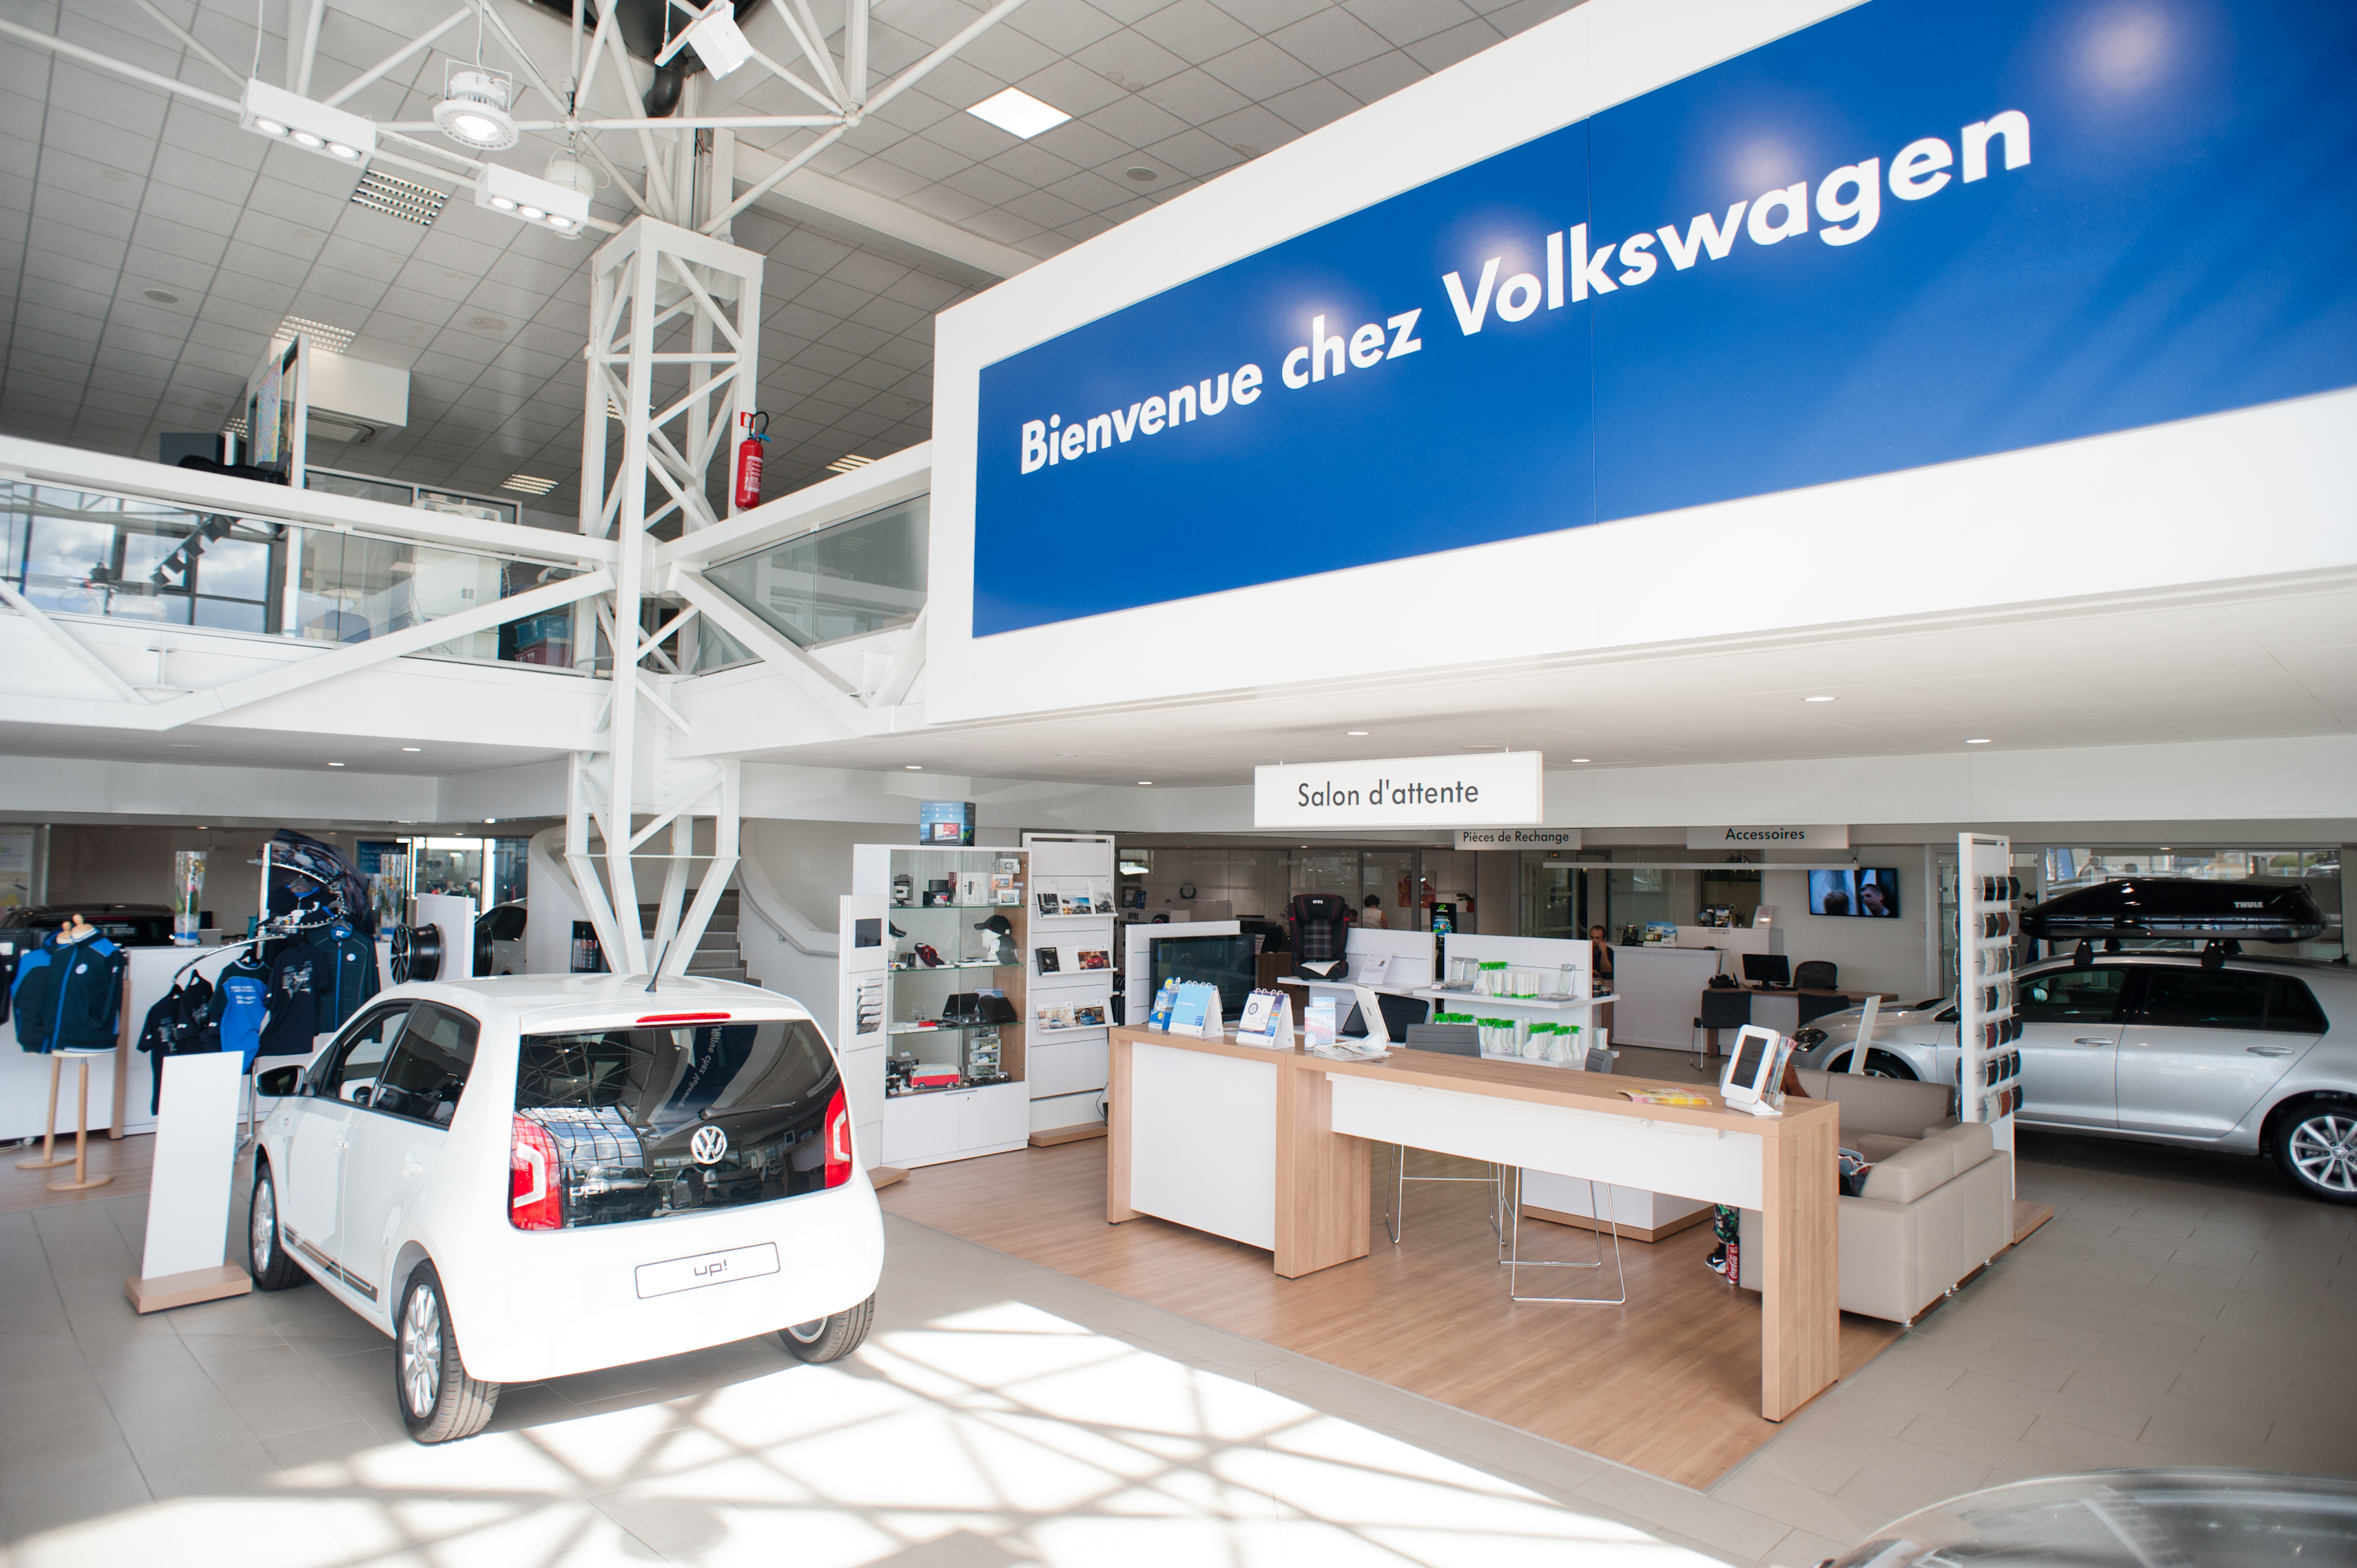 volkswagen clermont ferrand autosphere concessionnaire volkswagen aubi re auto occasion. Black Bedroom Furniture Sets. Home Design Ideas